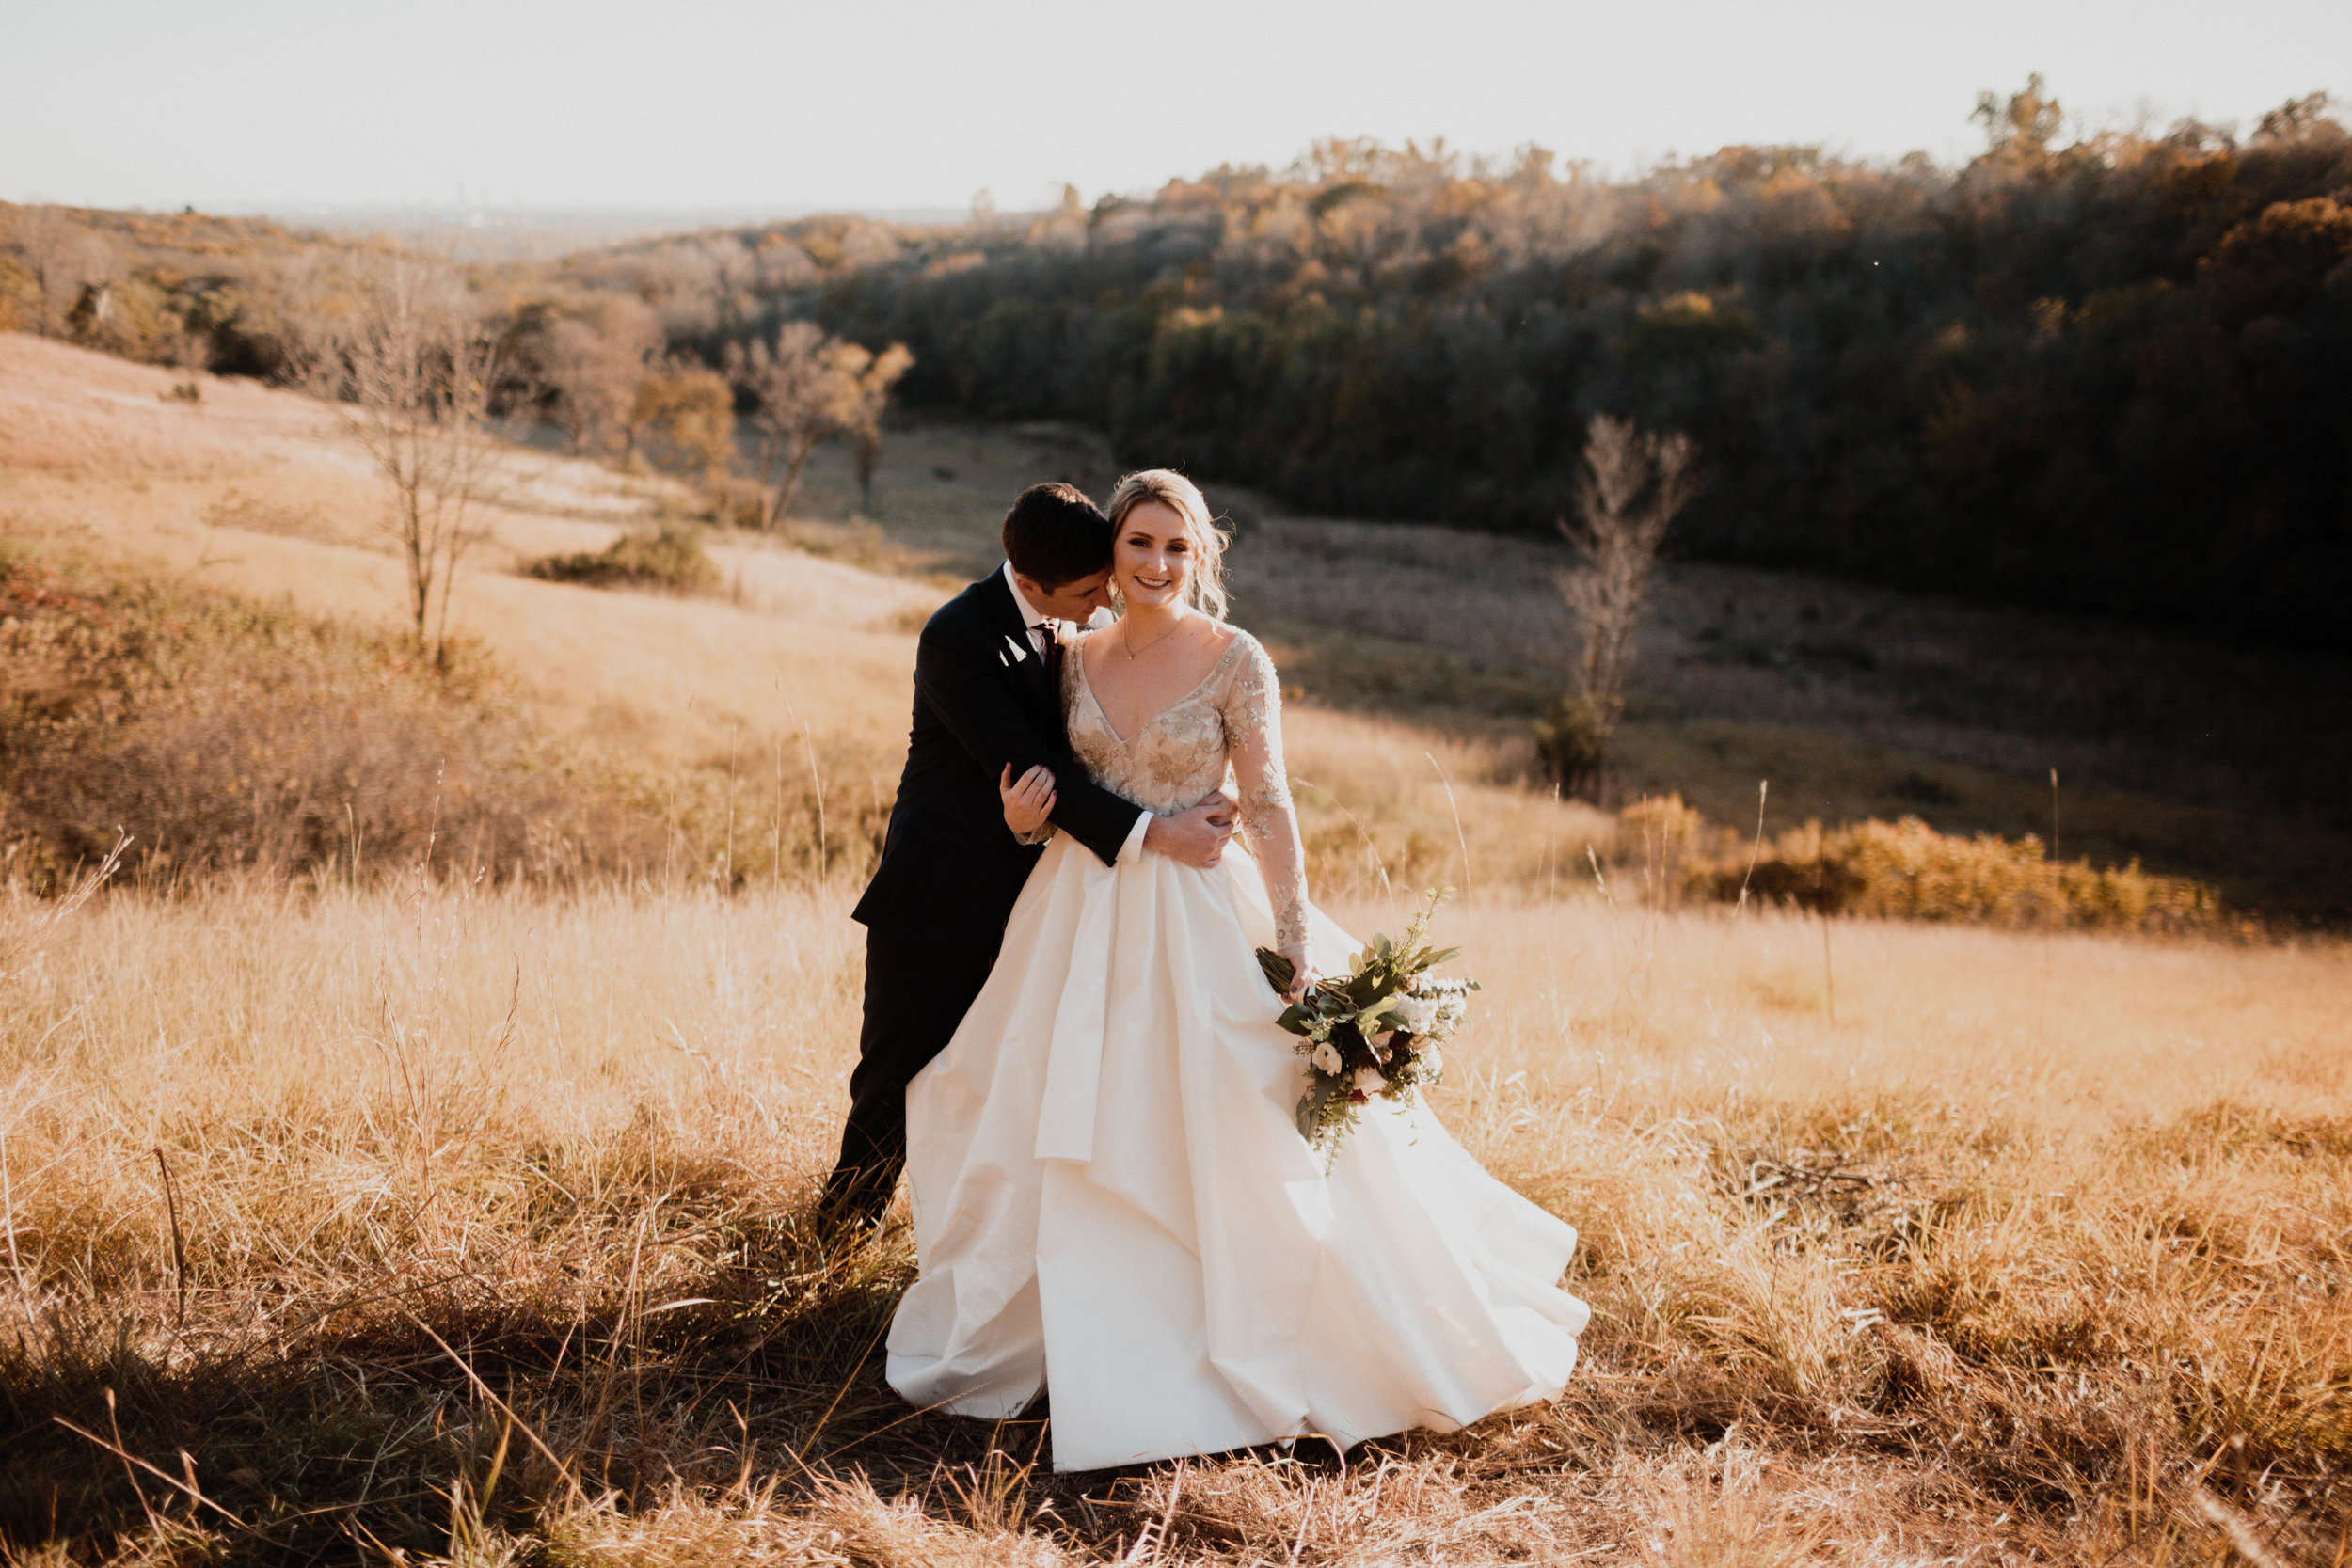 Jenny and Colin - Romantic Downtown Wedding